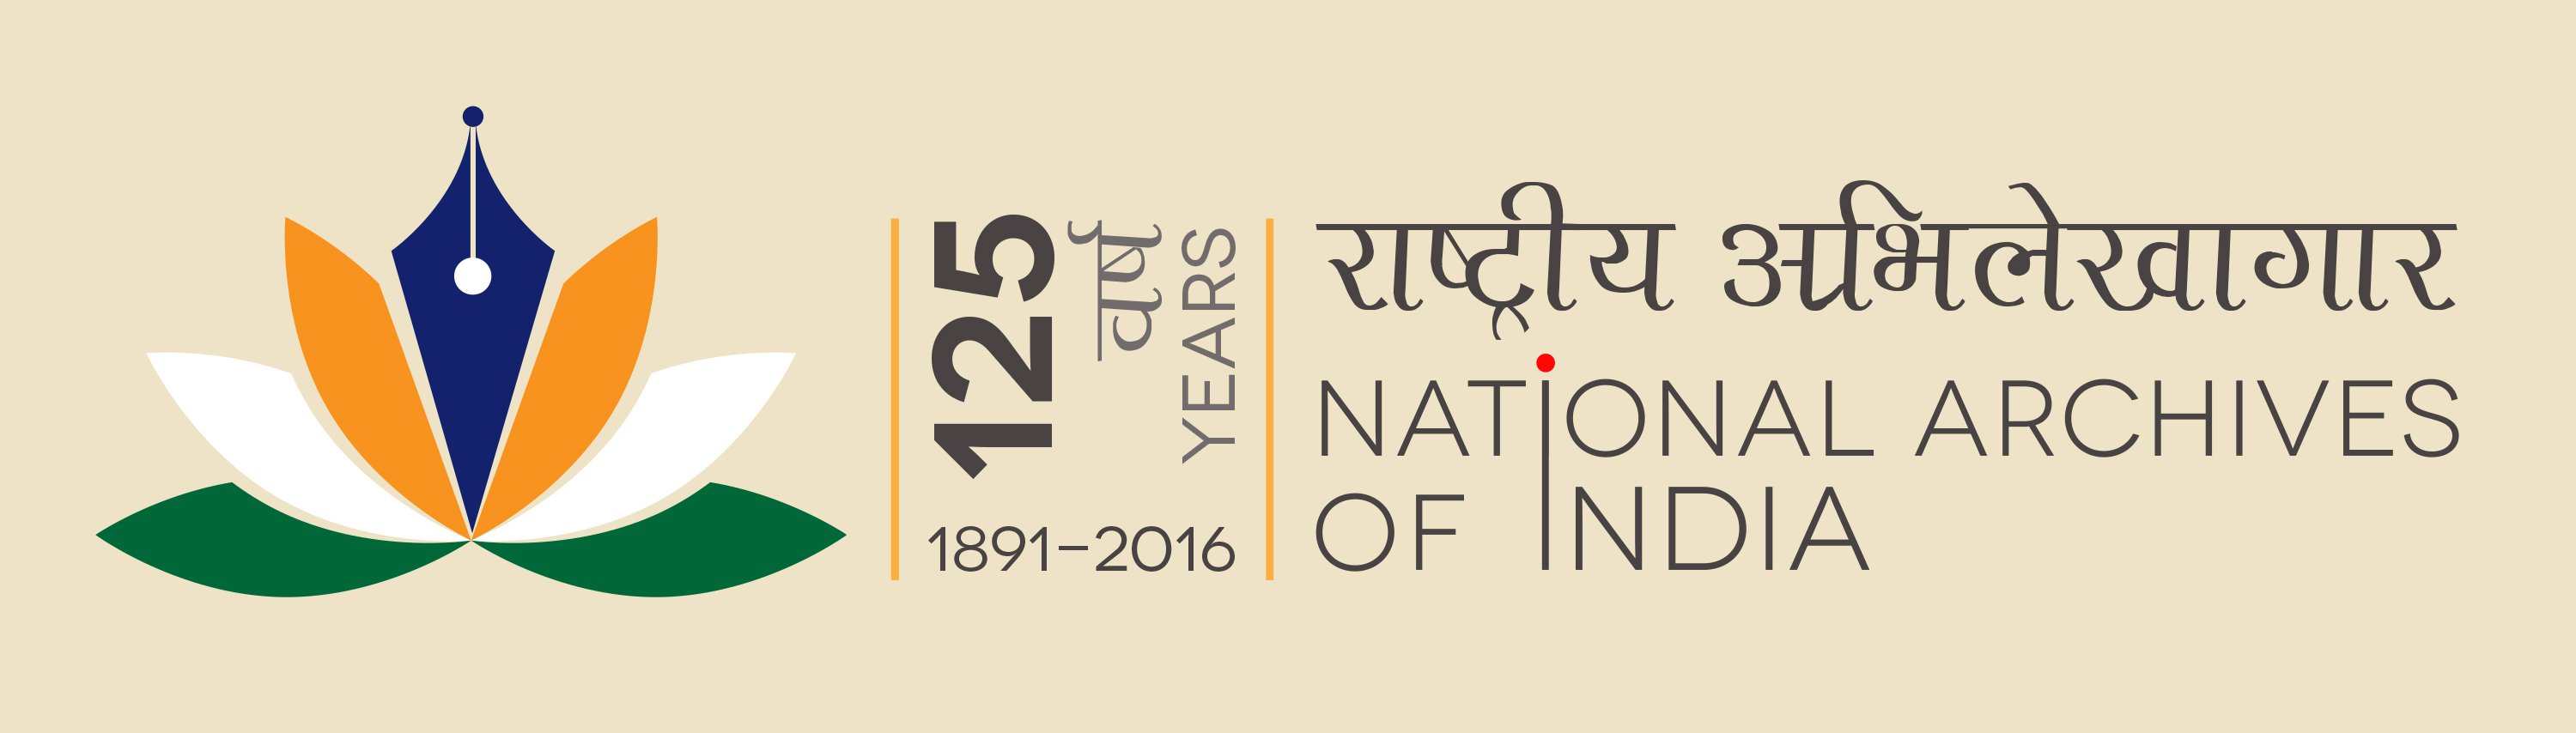 Nai logog the logo of national archives of india was launched by honorable minister of culture dr mahesh sharma on the occasion of 125th foundation year biocorpaavc Images